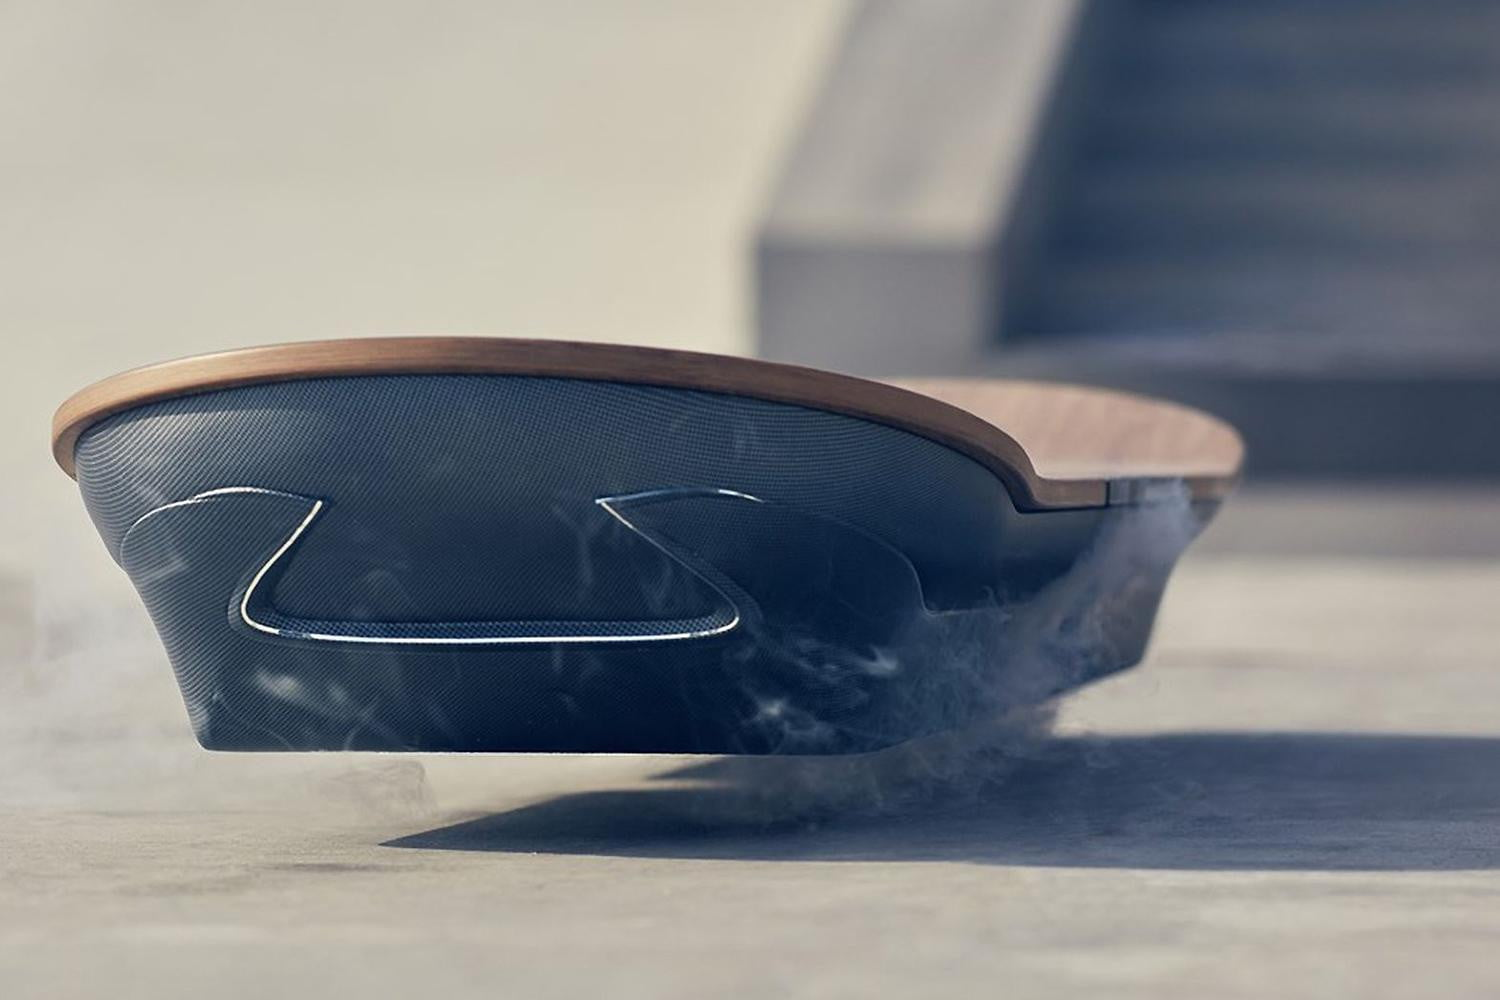 lexus hoverboard news pictures video amazing in motion slide hoeverboard 004 1500x1000